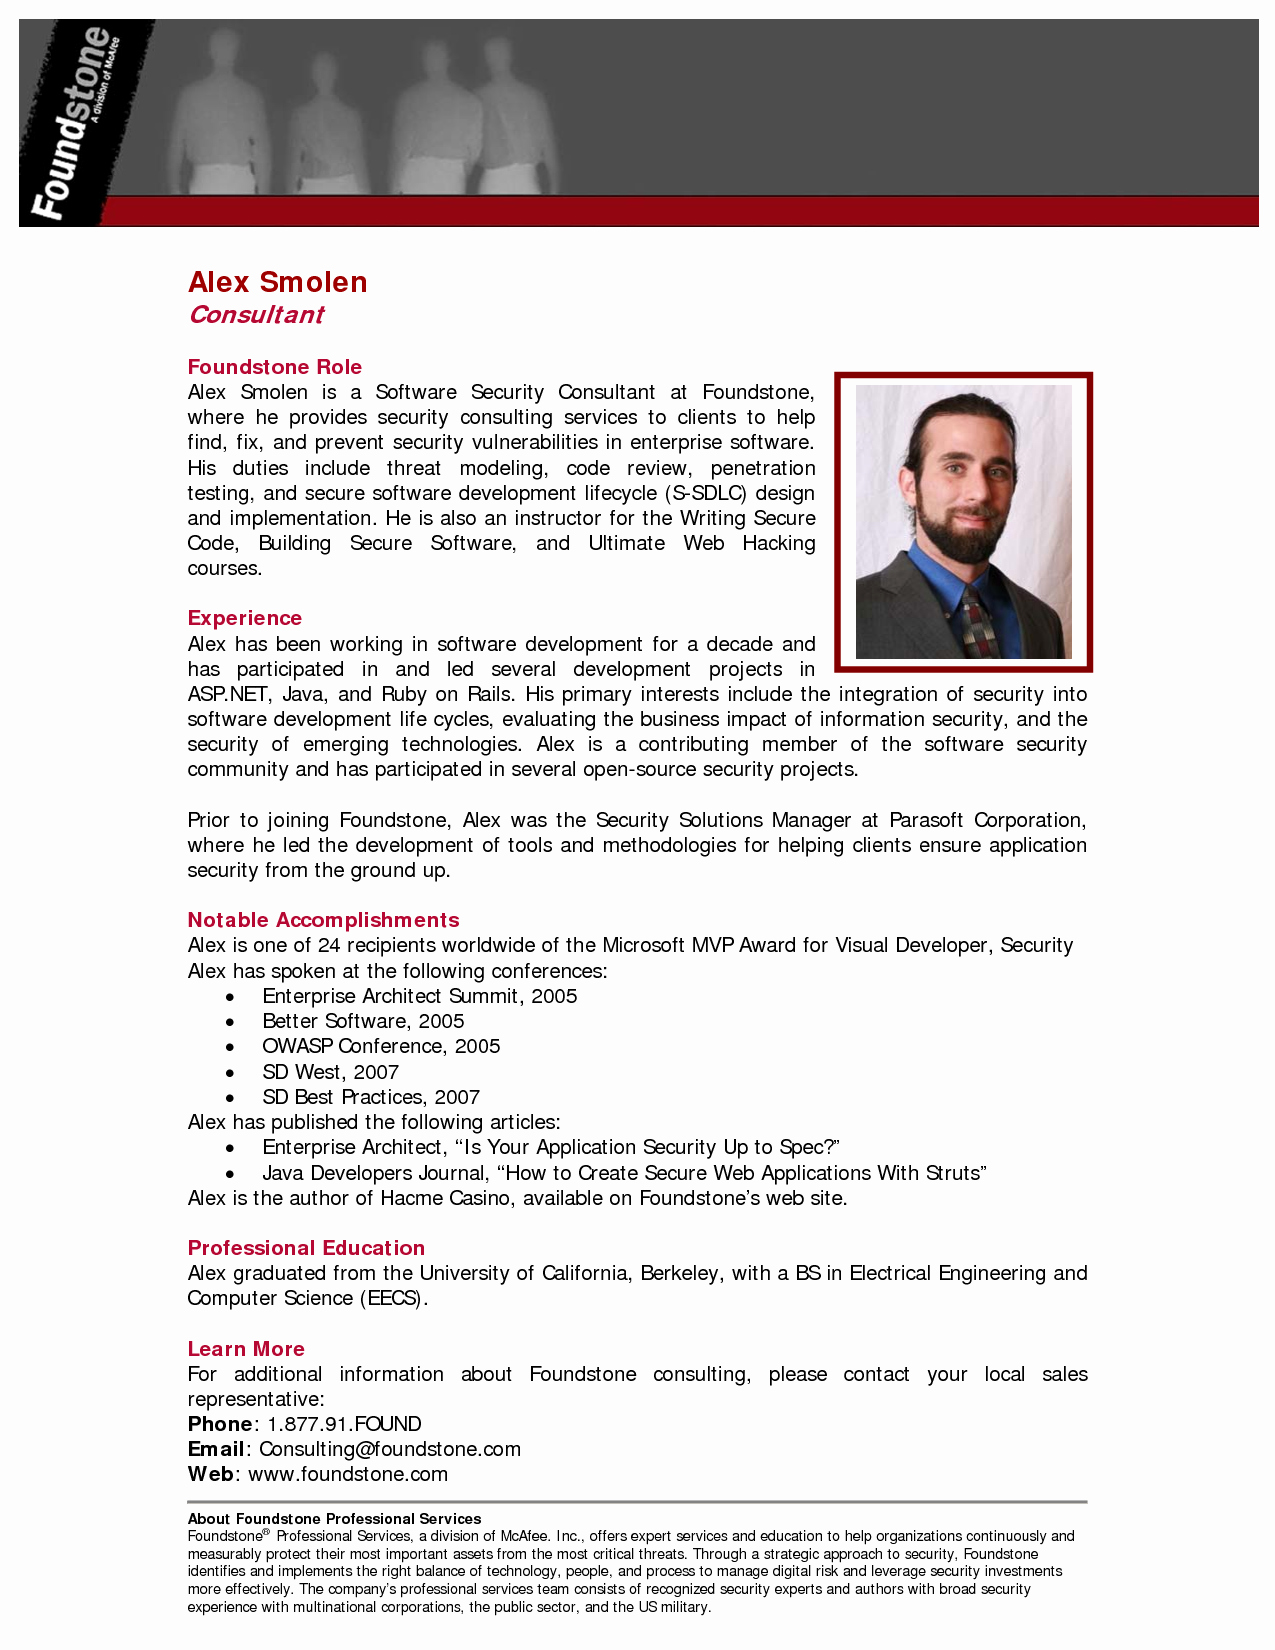 Professional Bio Template Word Inspirational Professional Bio Template